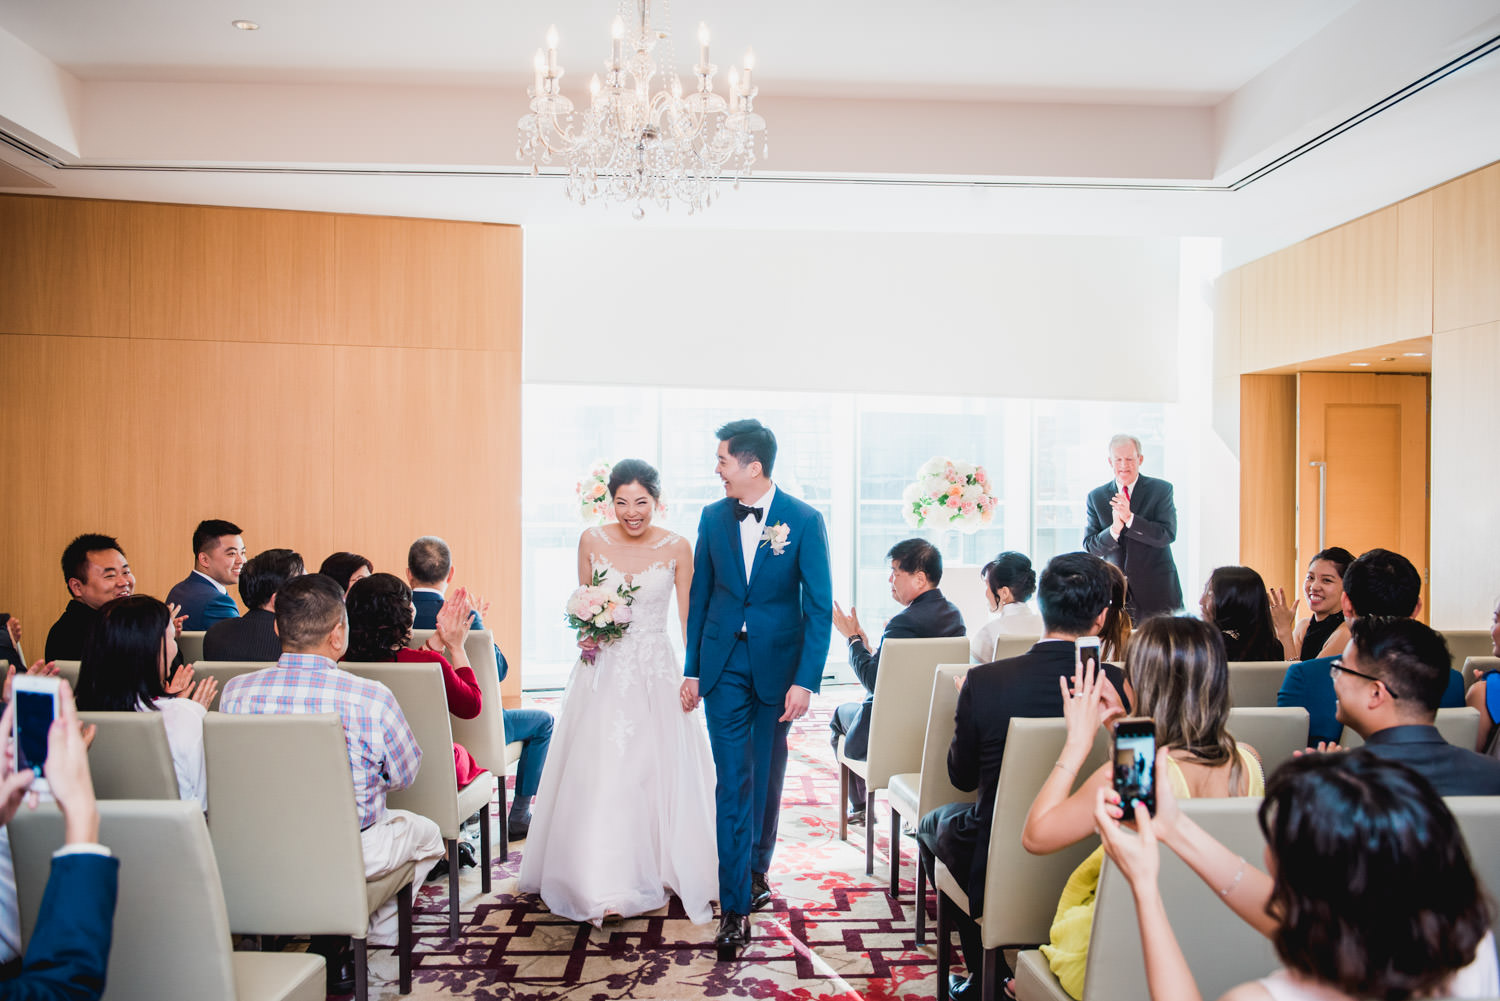 Groom and bride exit ceremony while crowd cheers at Shangri-La Hotel in Toronto